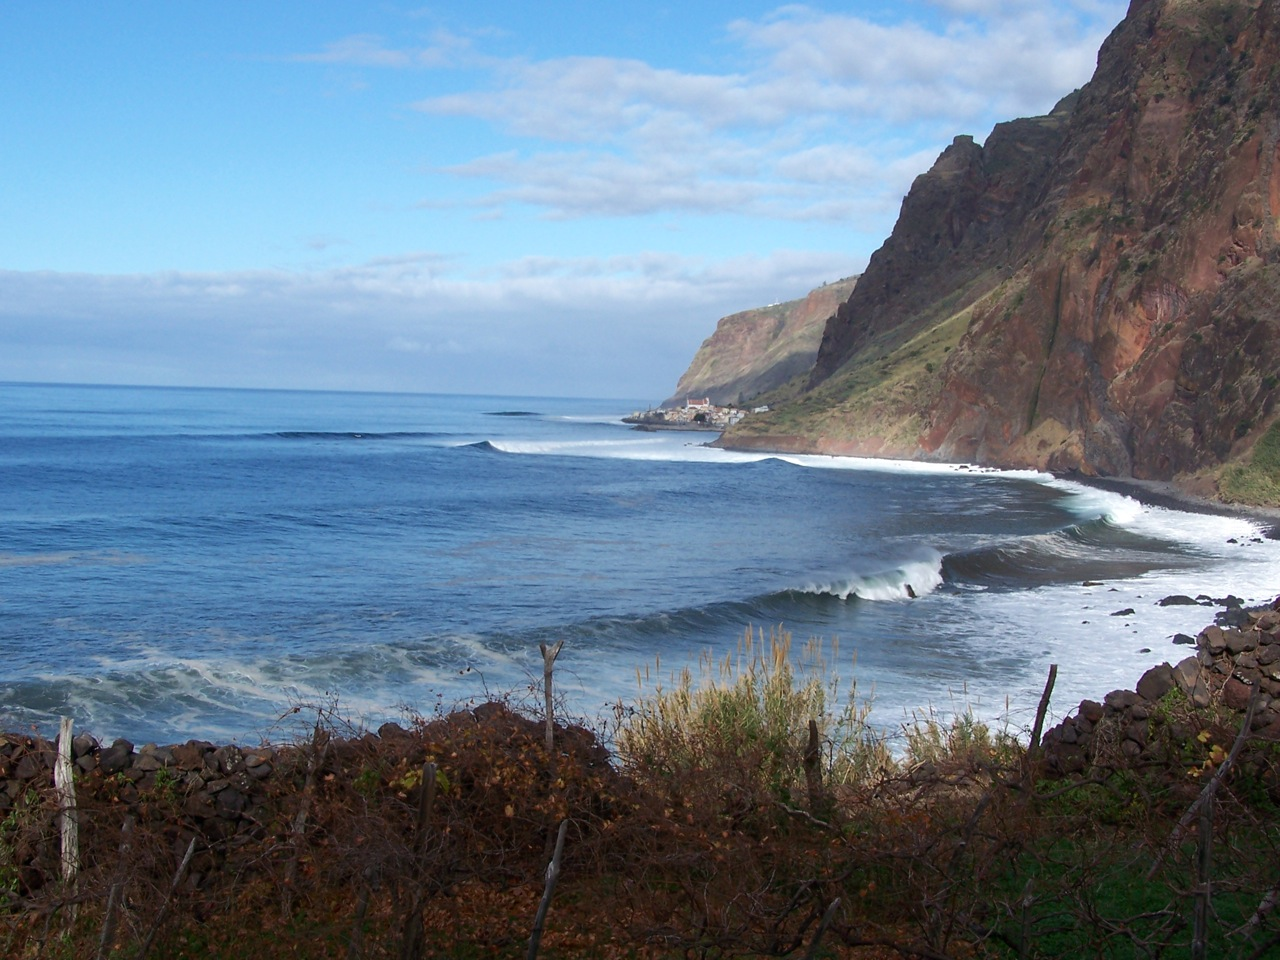 swell-s-up-at-the-rock-11.jpg